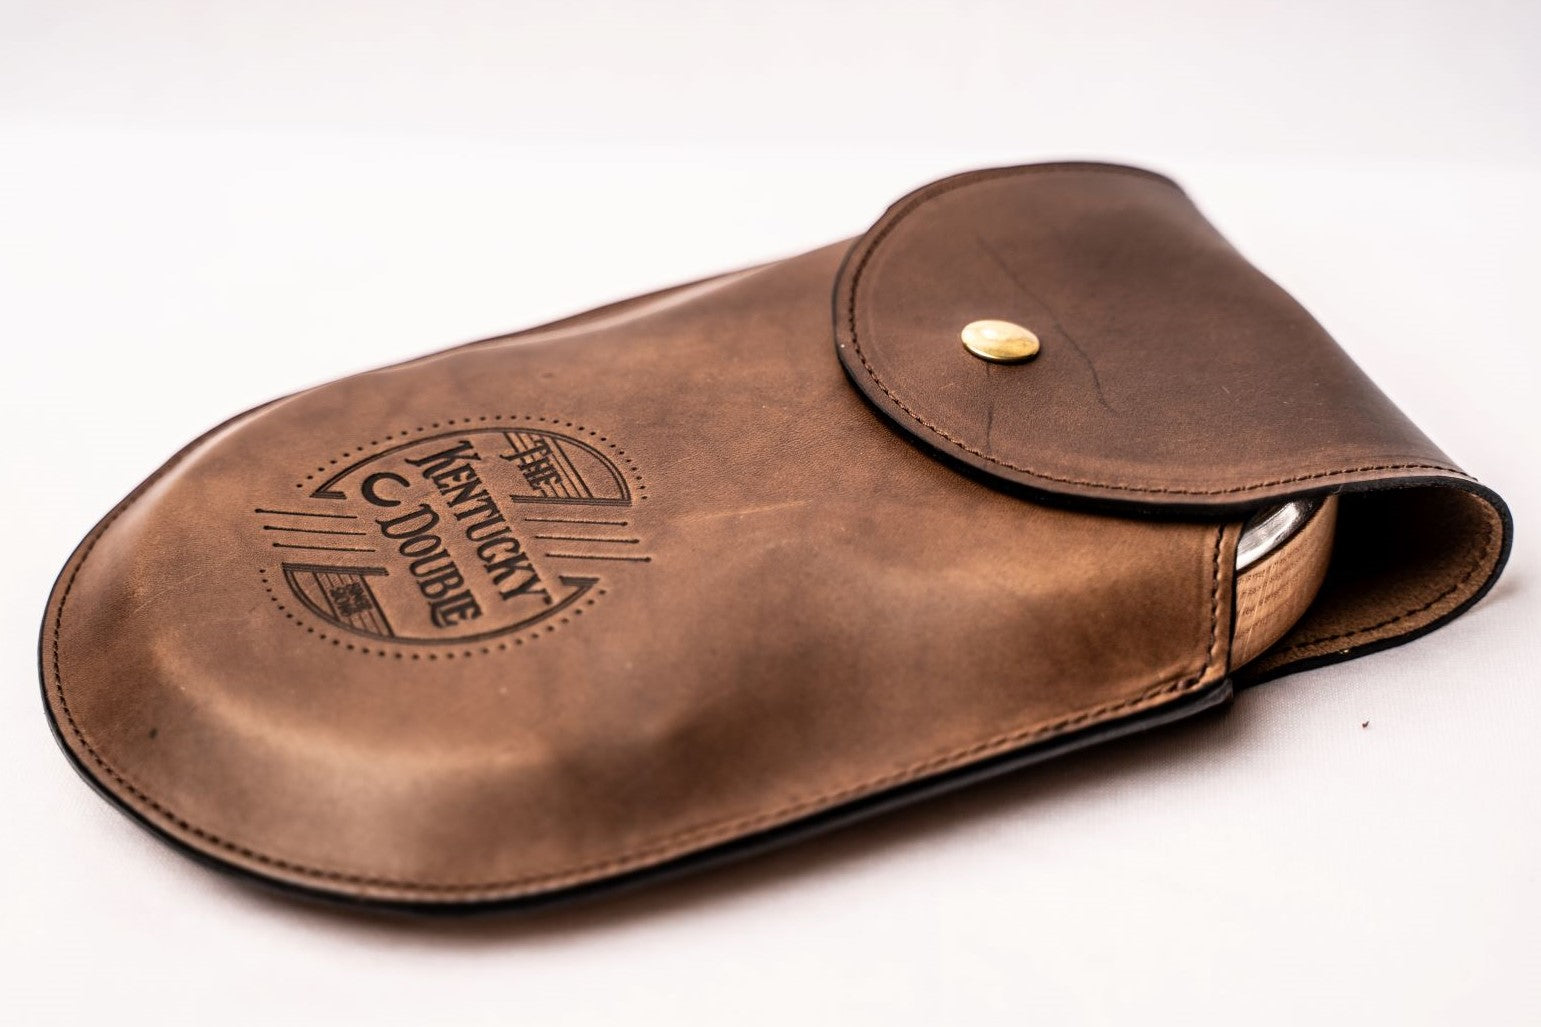 The Kentucky Double Leather Case